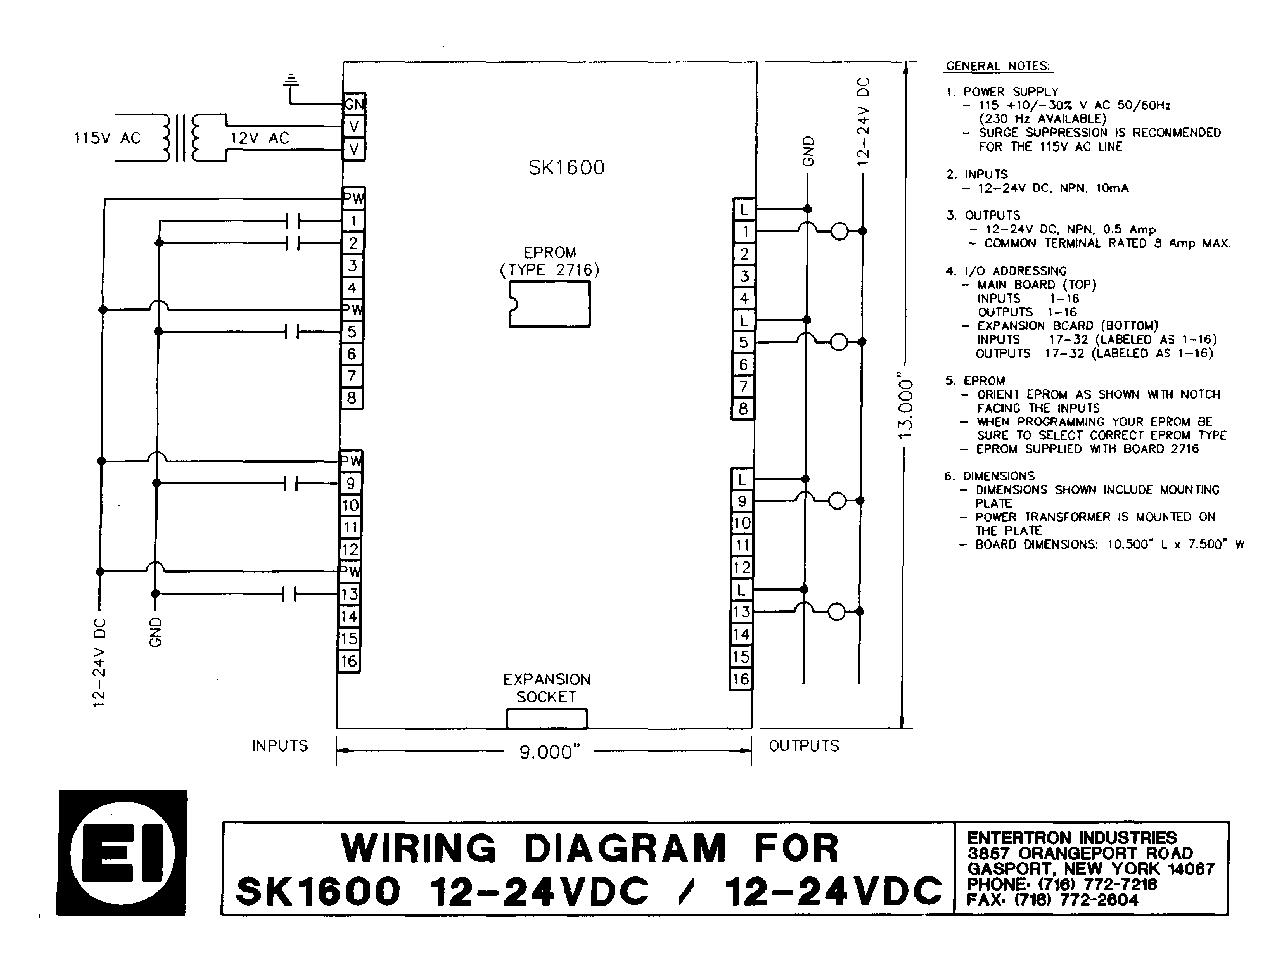 penn manufacturing wiring diagrams goodman manufacturing wiring diagrams gmp050 03 entertron industries - manufacturing plc for oems since ...